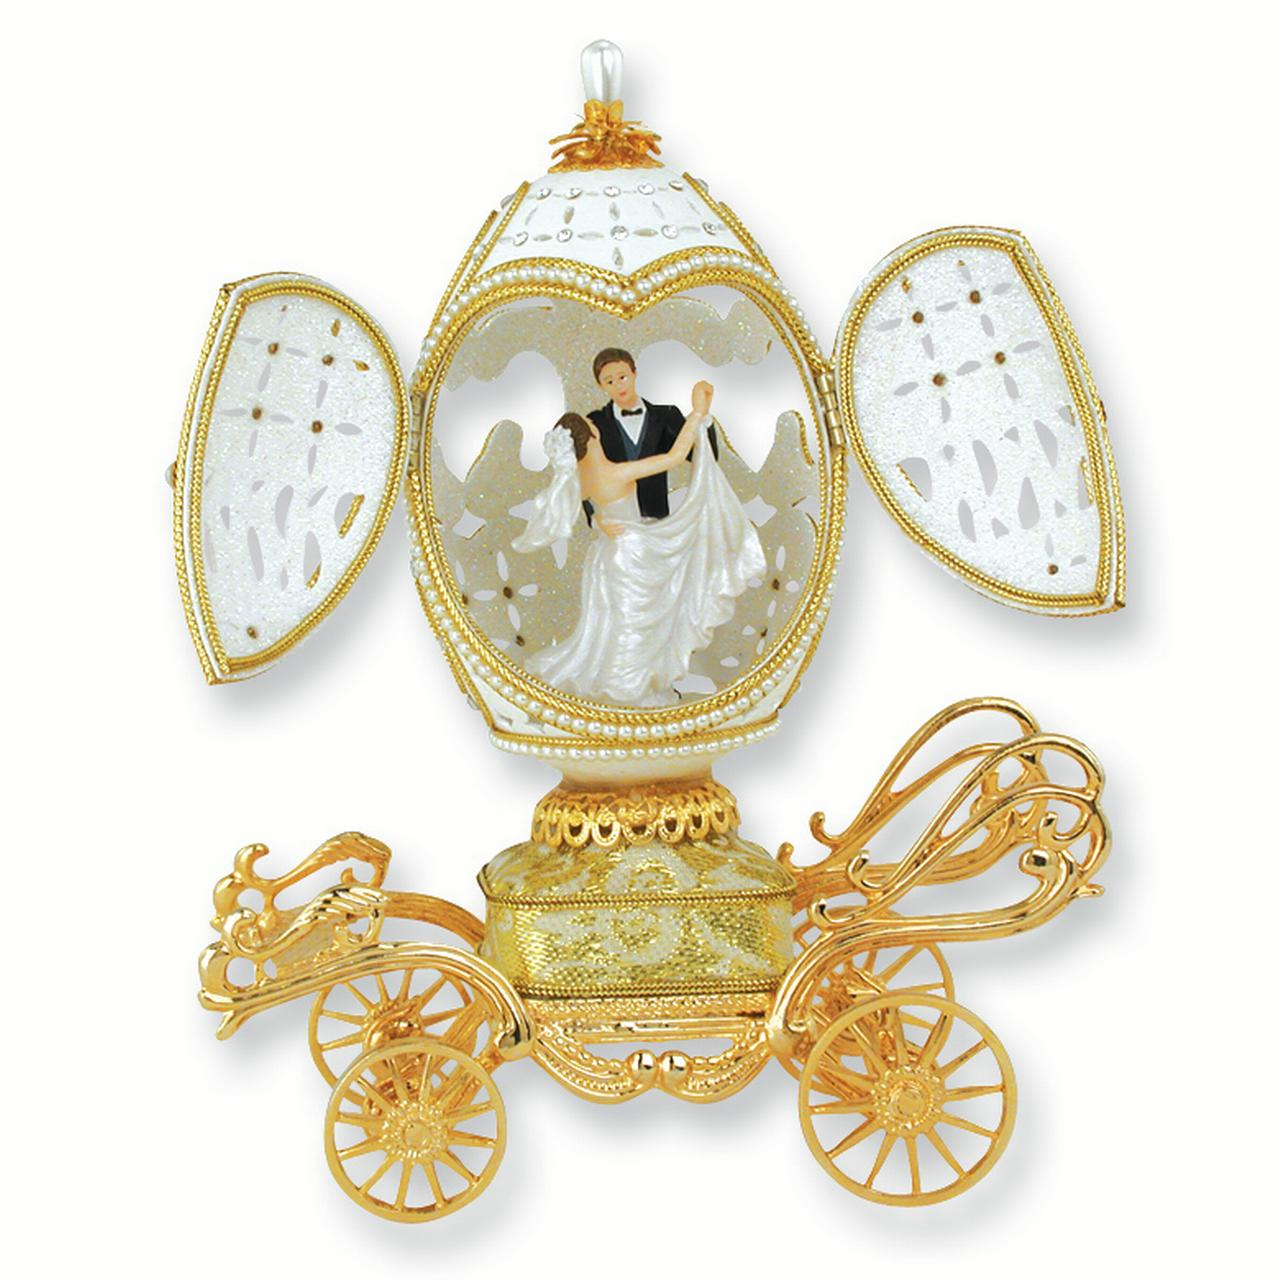 Bride Groom Musical Goose Egg Figurine Gifts For Women For Her